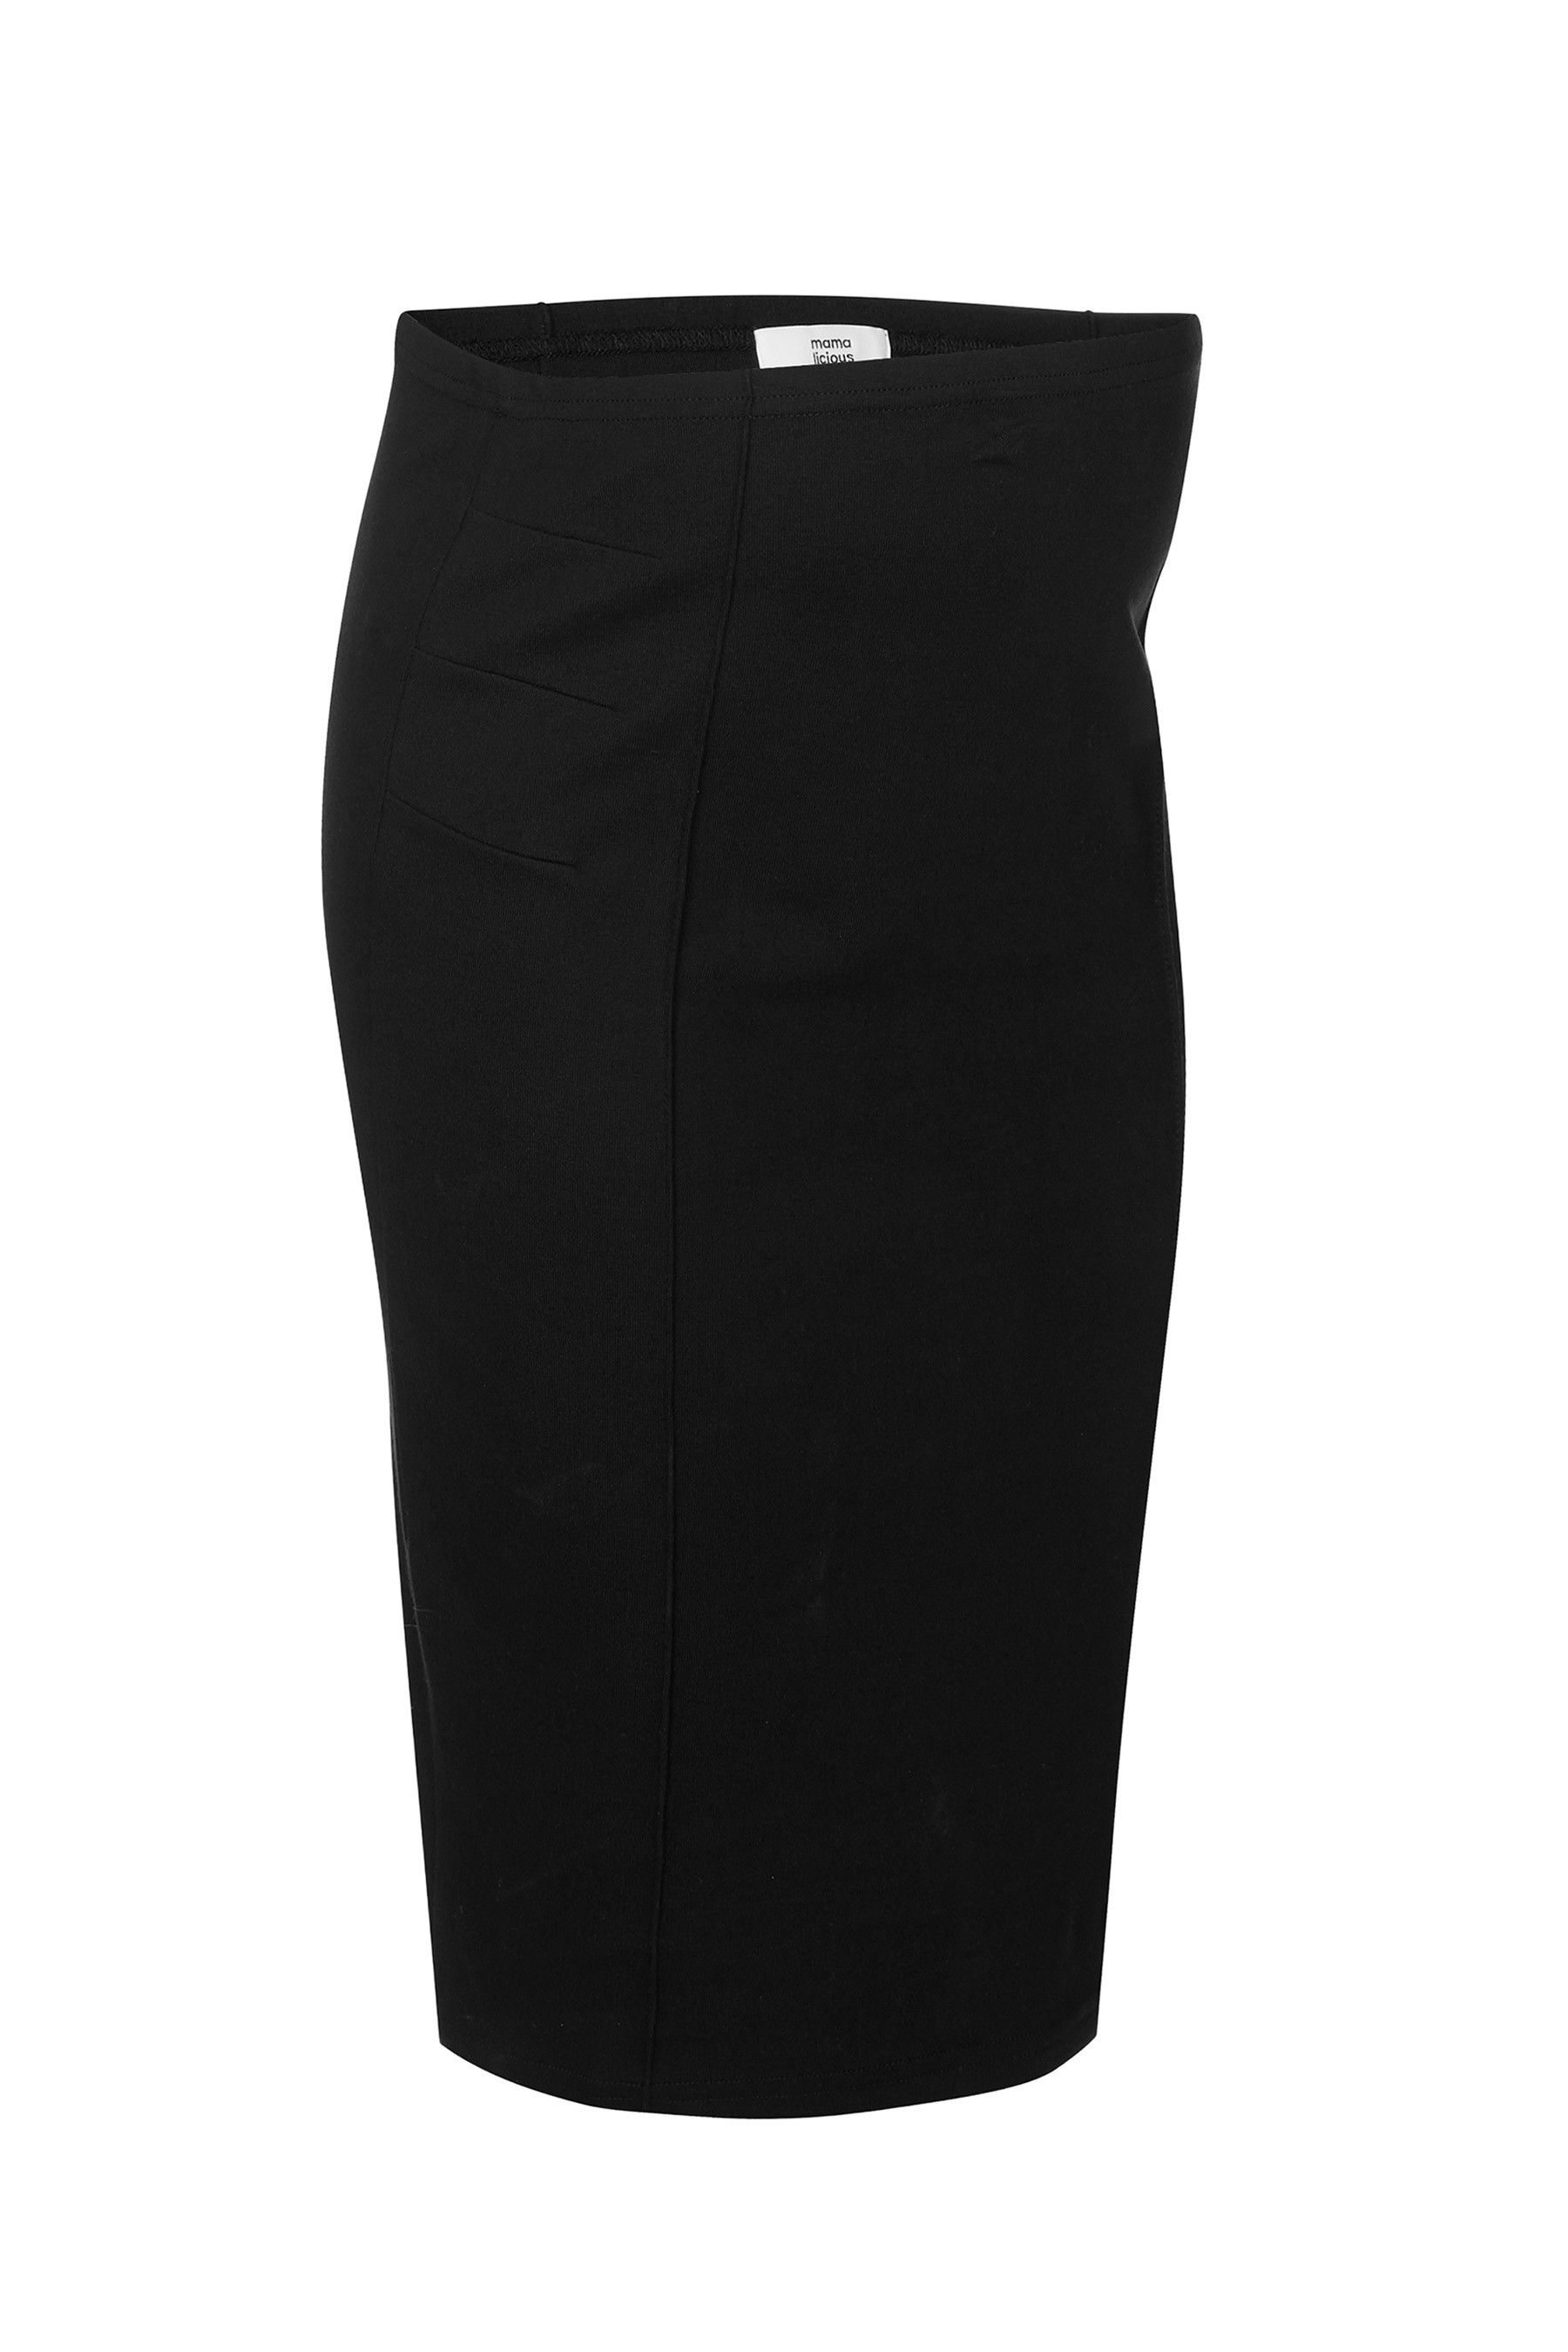 BUMP IT UP MATERNITY Black Tube Maxi Skirt With Comfort